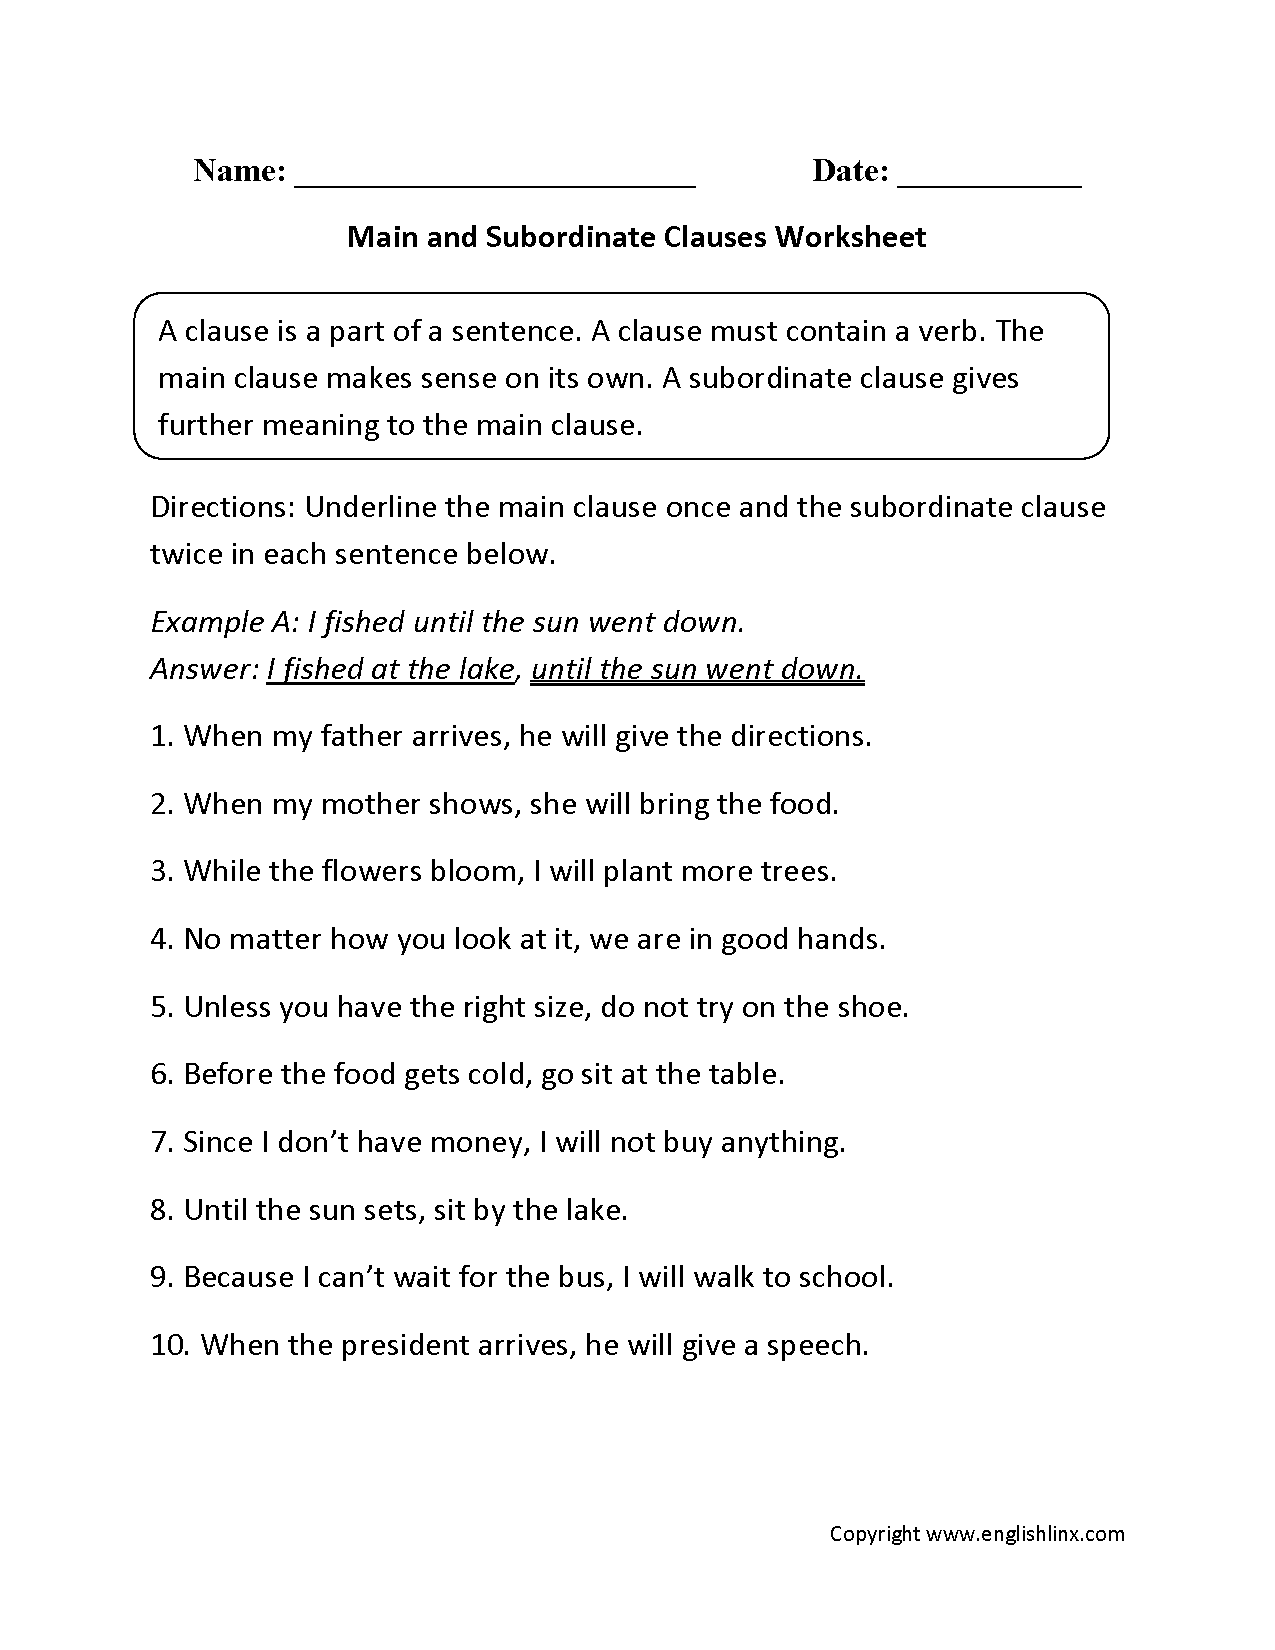 Worksheets Independent And Dependent Clauses Worksheets englishlinx com clauses worksheets main and subordinate worksheet